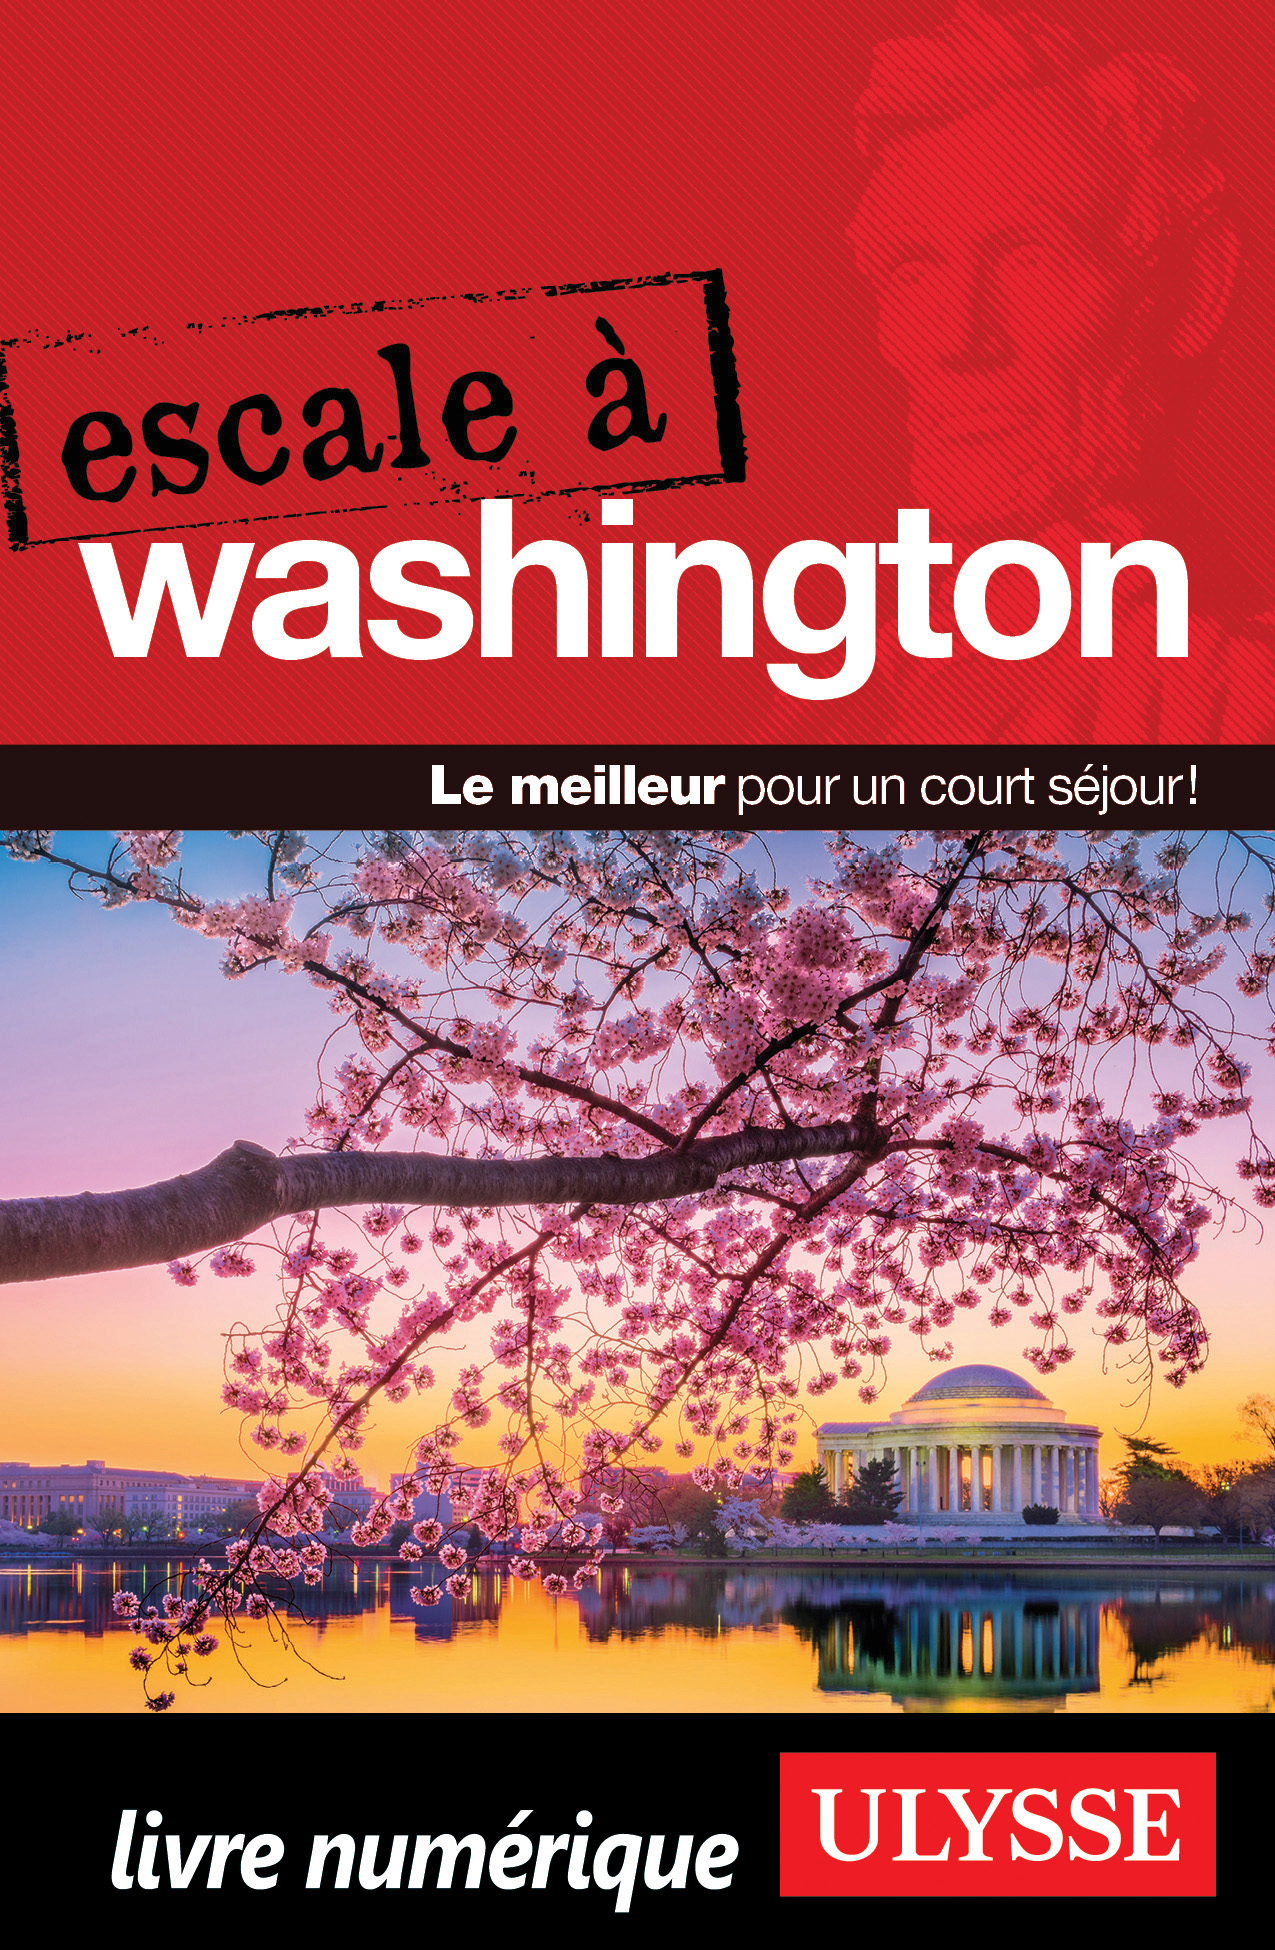 Vignette du livre Escale à Washington, D.C.